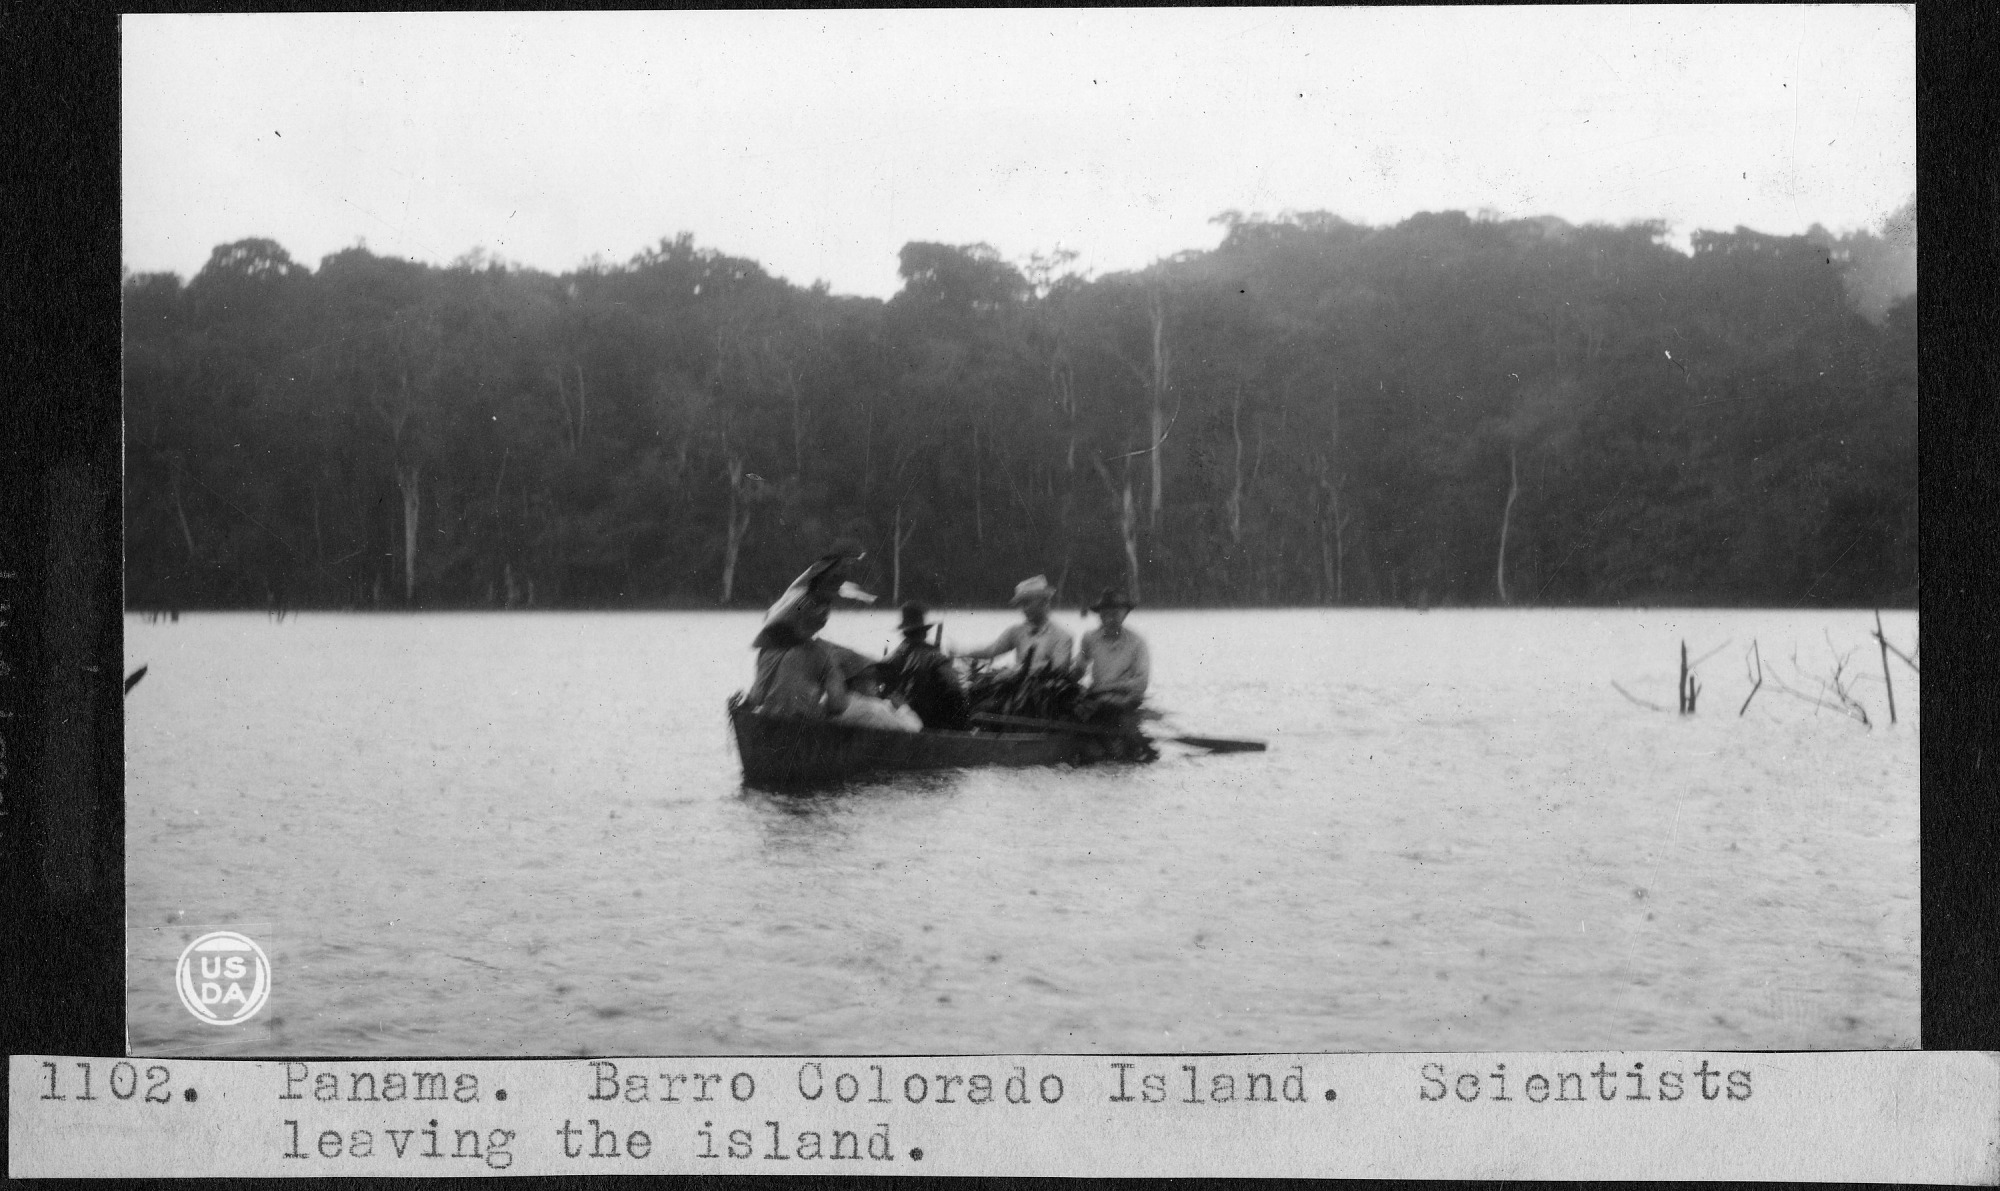 Scientists Leaving Barro Colorado Island